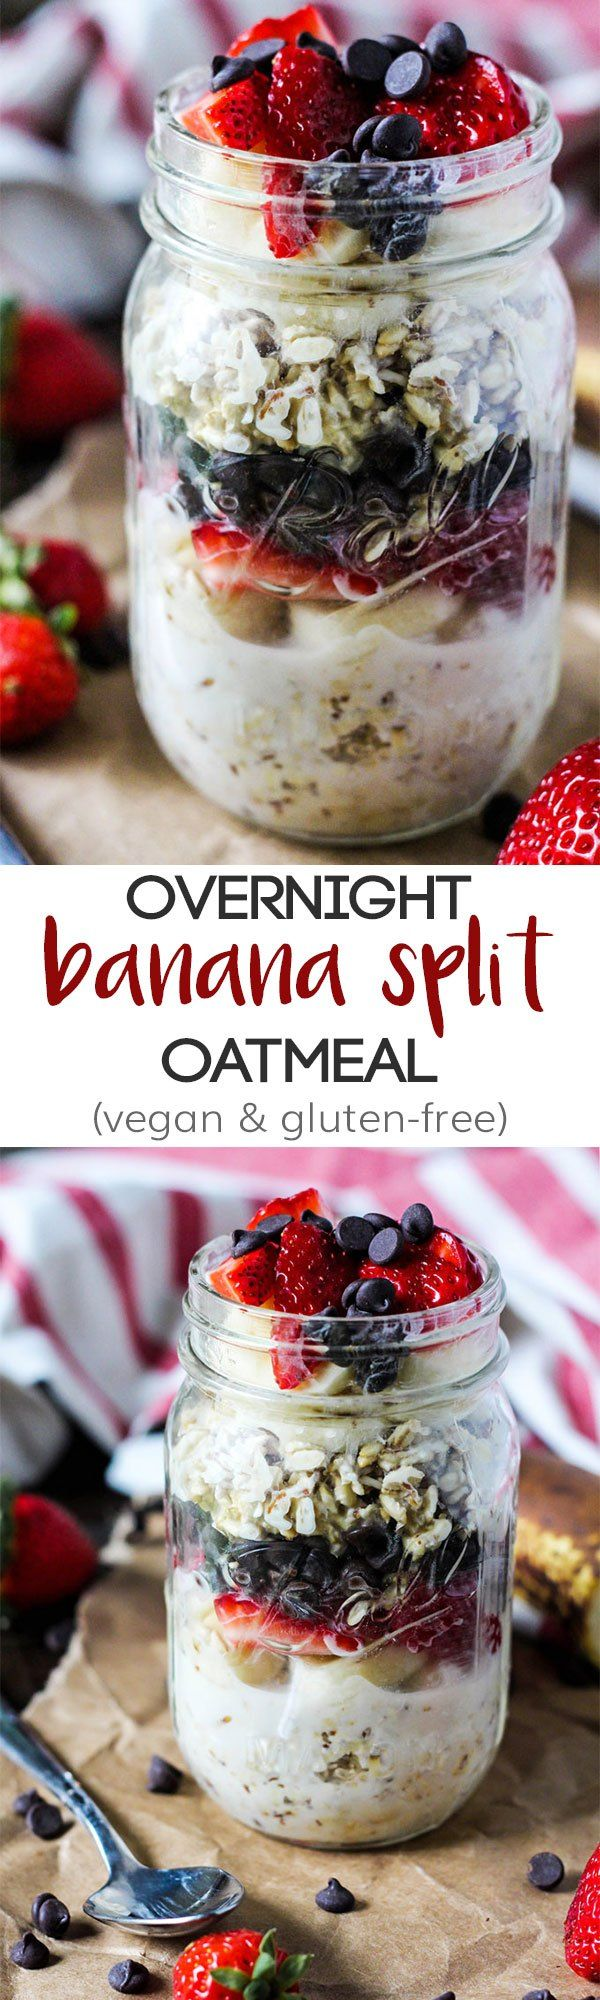 This classic dessert gets a healthy breakfast makeover! Make some Overnight…